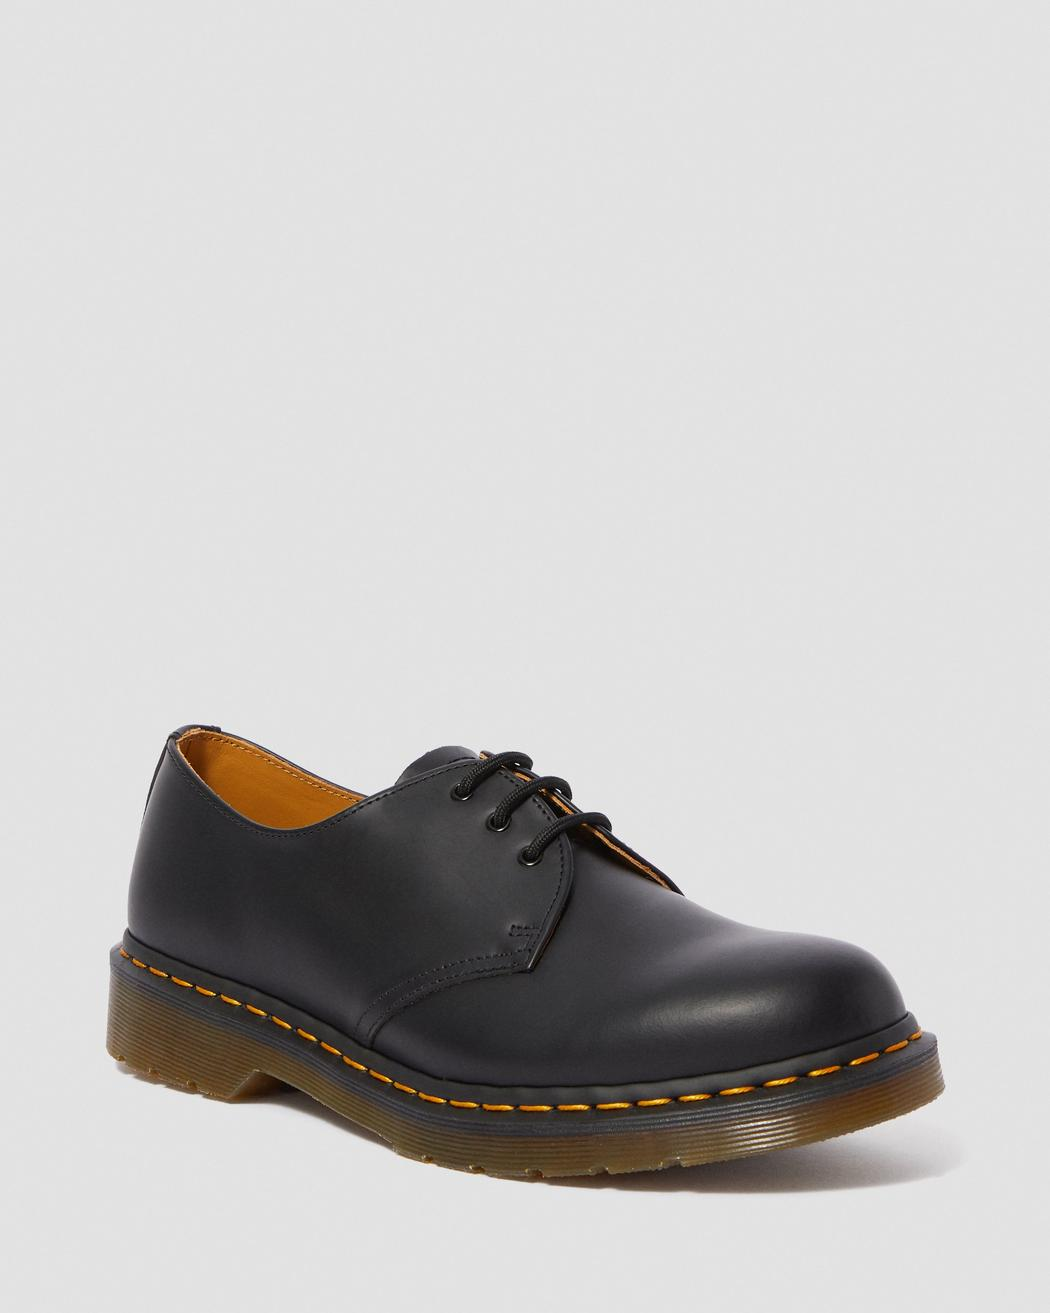 1461 SMOOTH LEATHER OXFORD SHOES